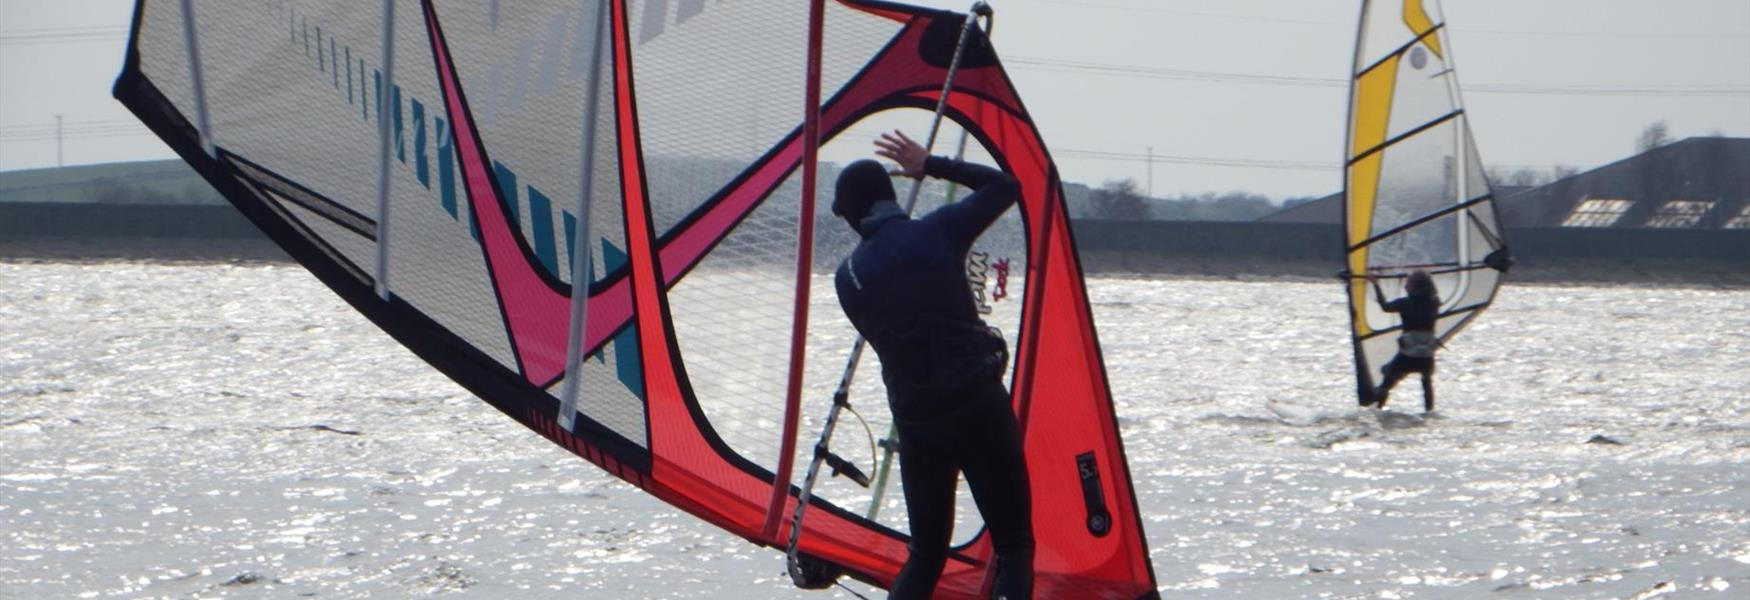 A lone windsurfer on Hollingworth Lake.